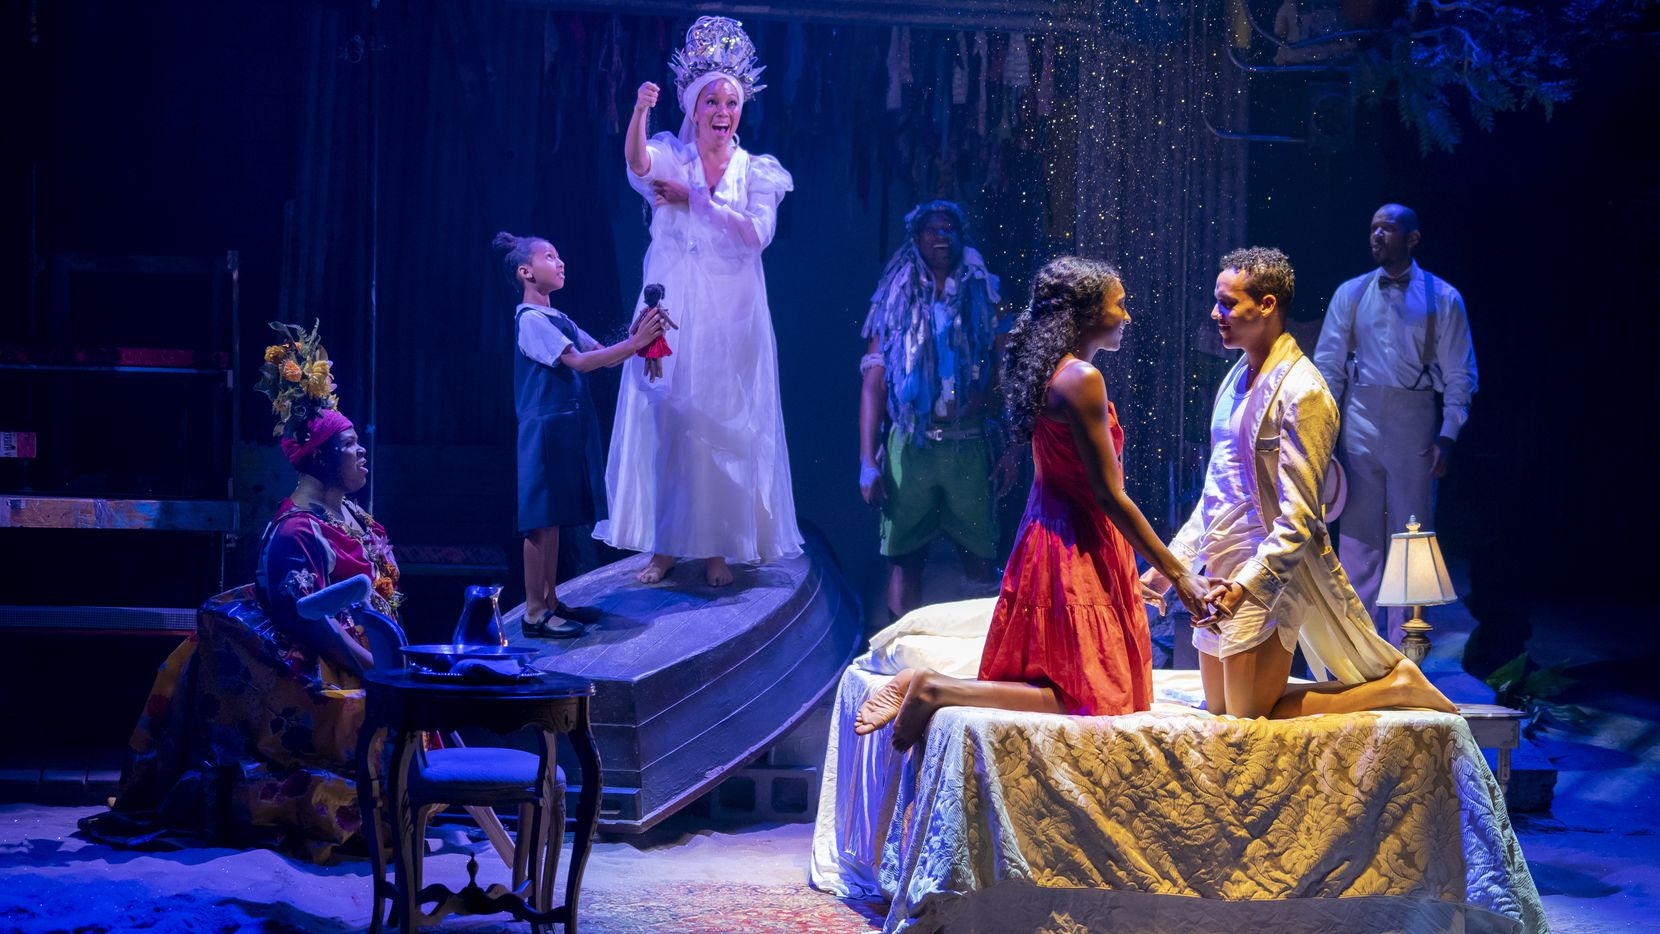 """The touring productionof the 2017 Broadway revival of""""Once on This Island"""" is coming to Dallas as part of the AT&T Performing Arts Center's Broadway series from Dec. 17-22. Directed by Michael Arden, this new version of the 1990 musical emphasizes realism as the characters deal with the aftermath of a flood and the class divide on their French Antilles archipelago."""